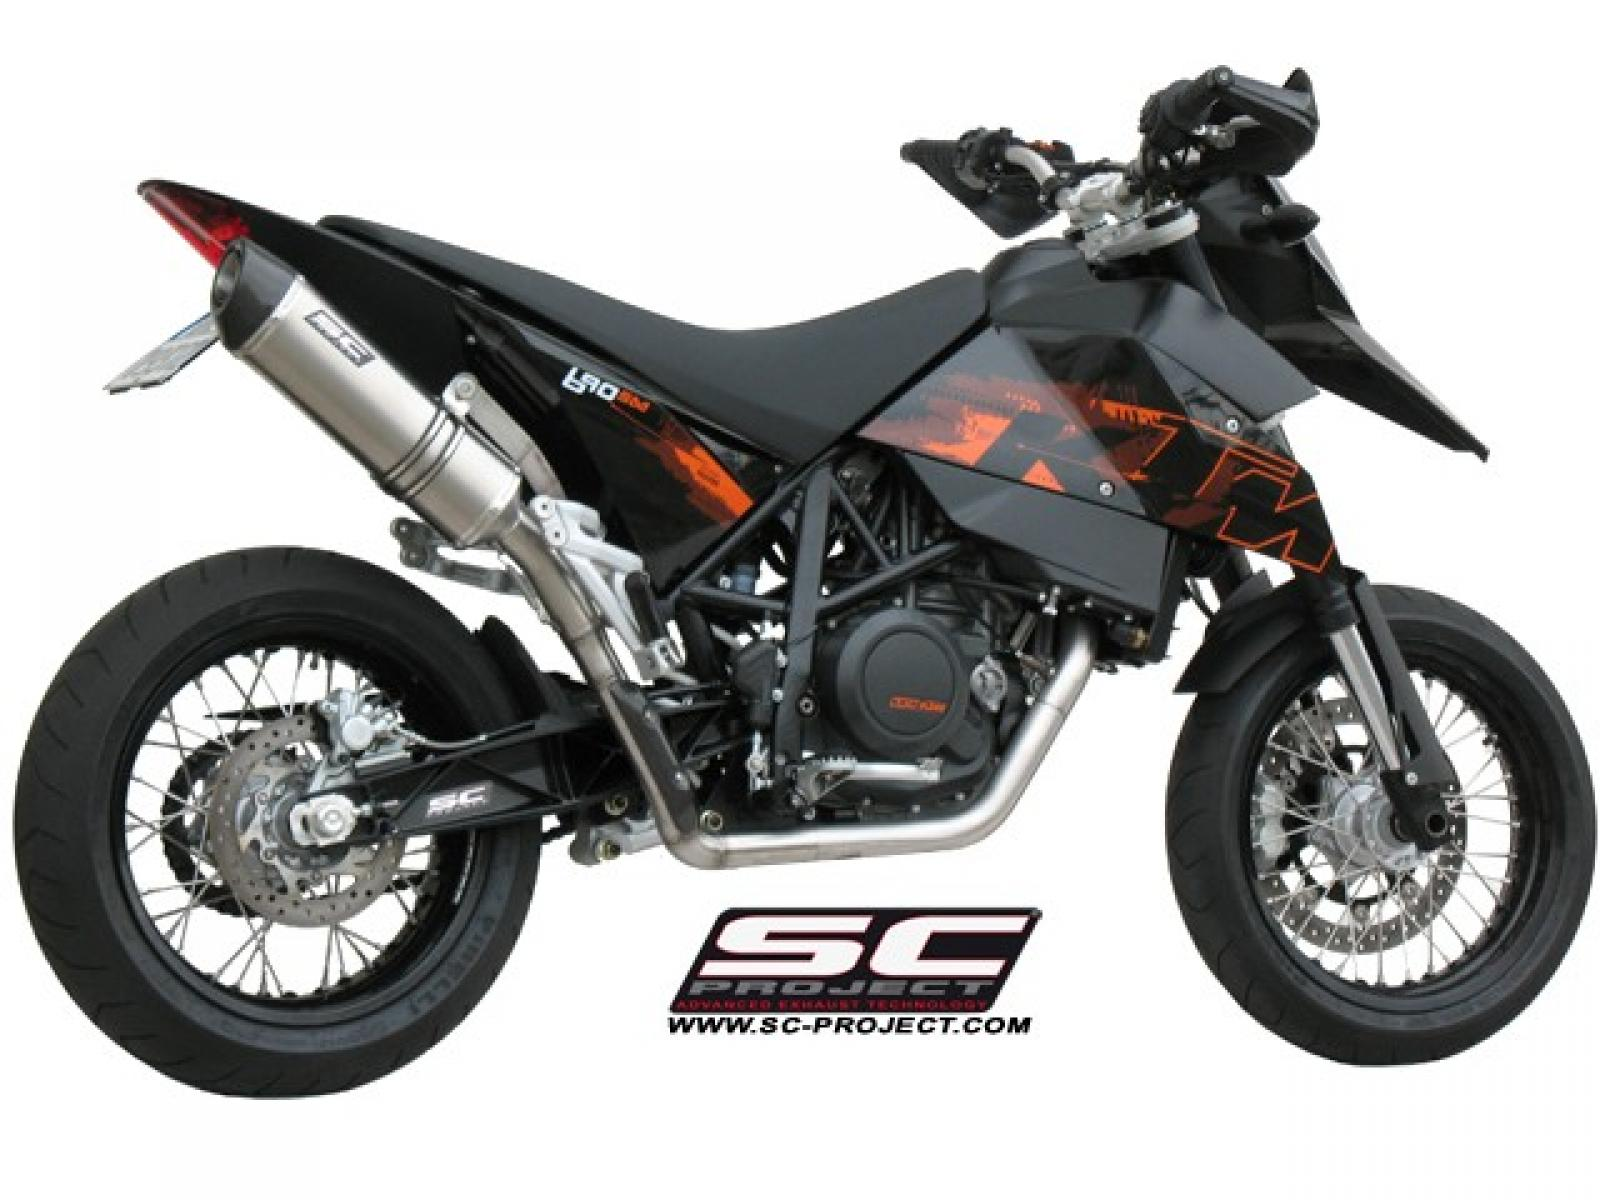 KTM 690 Supermoto Limited Edition 2010 images #155311